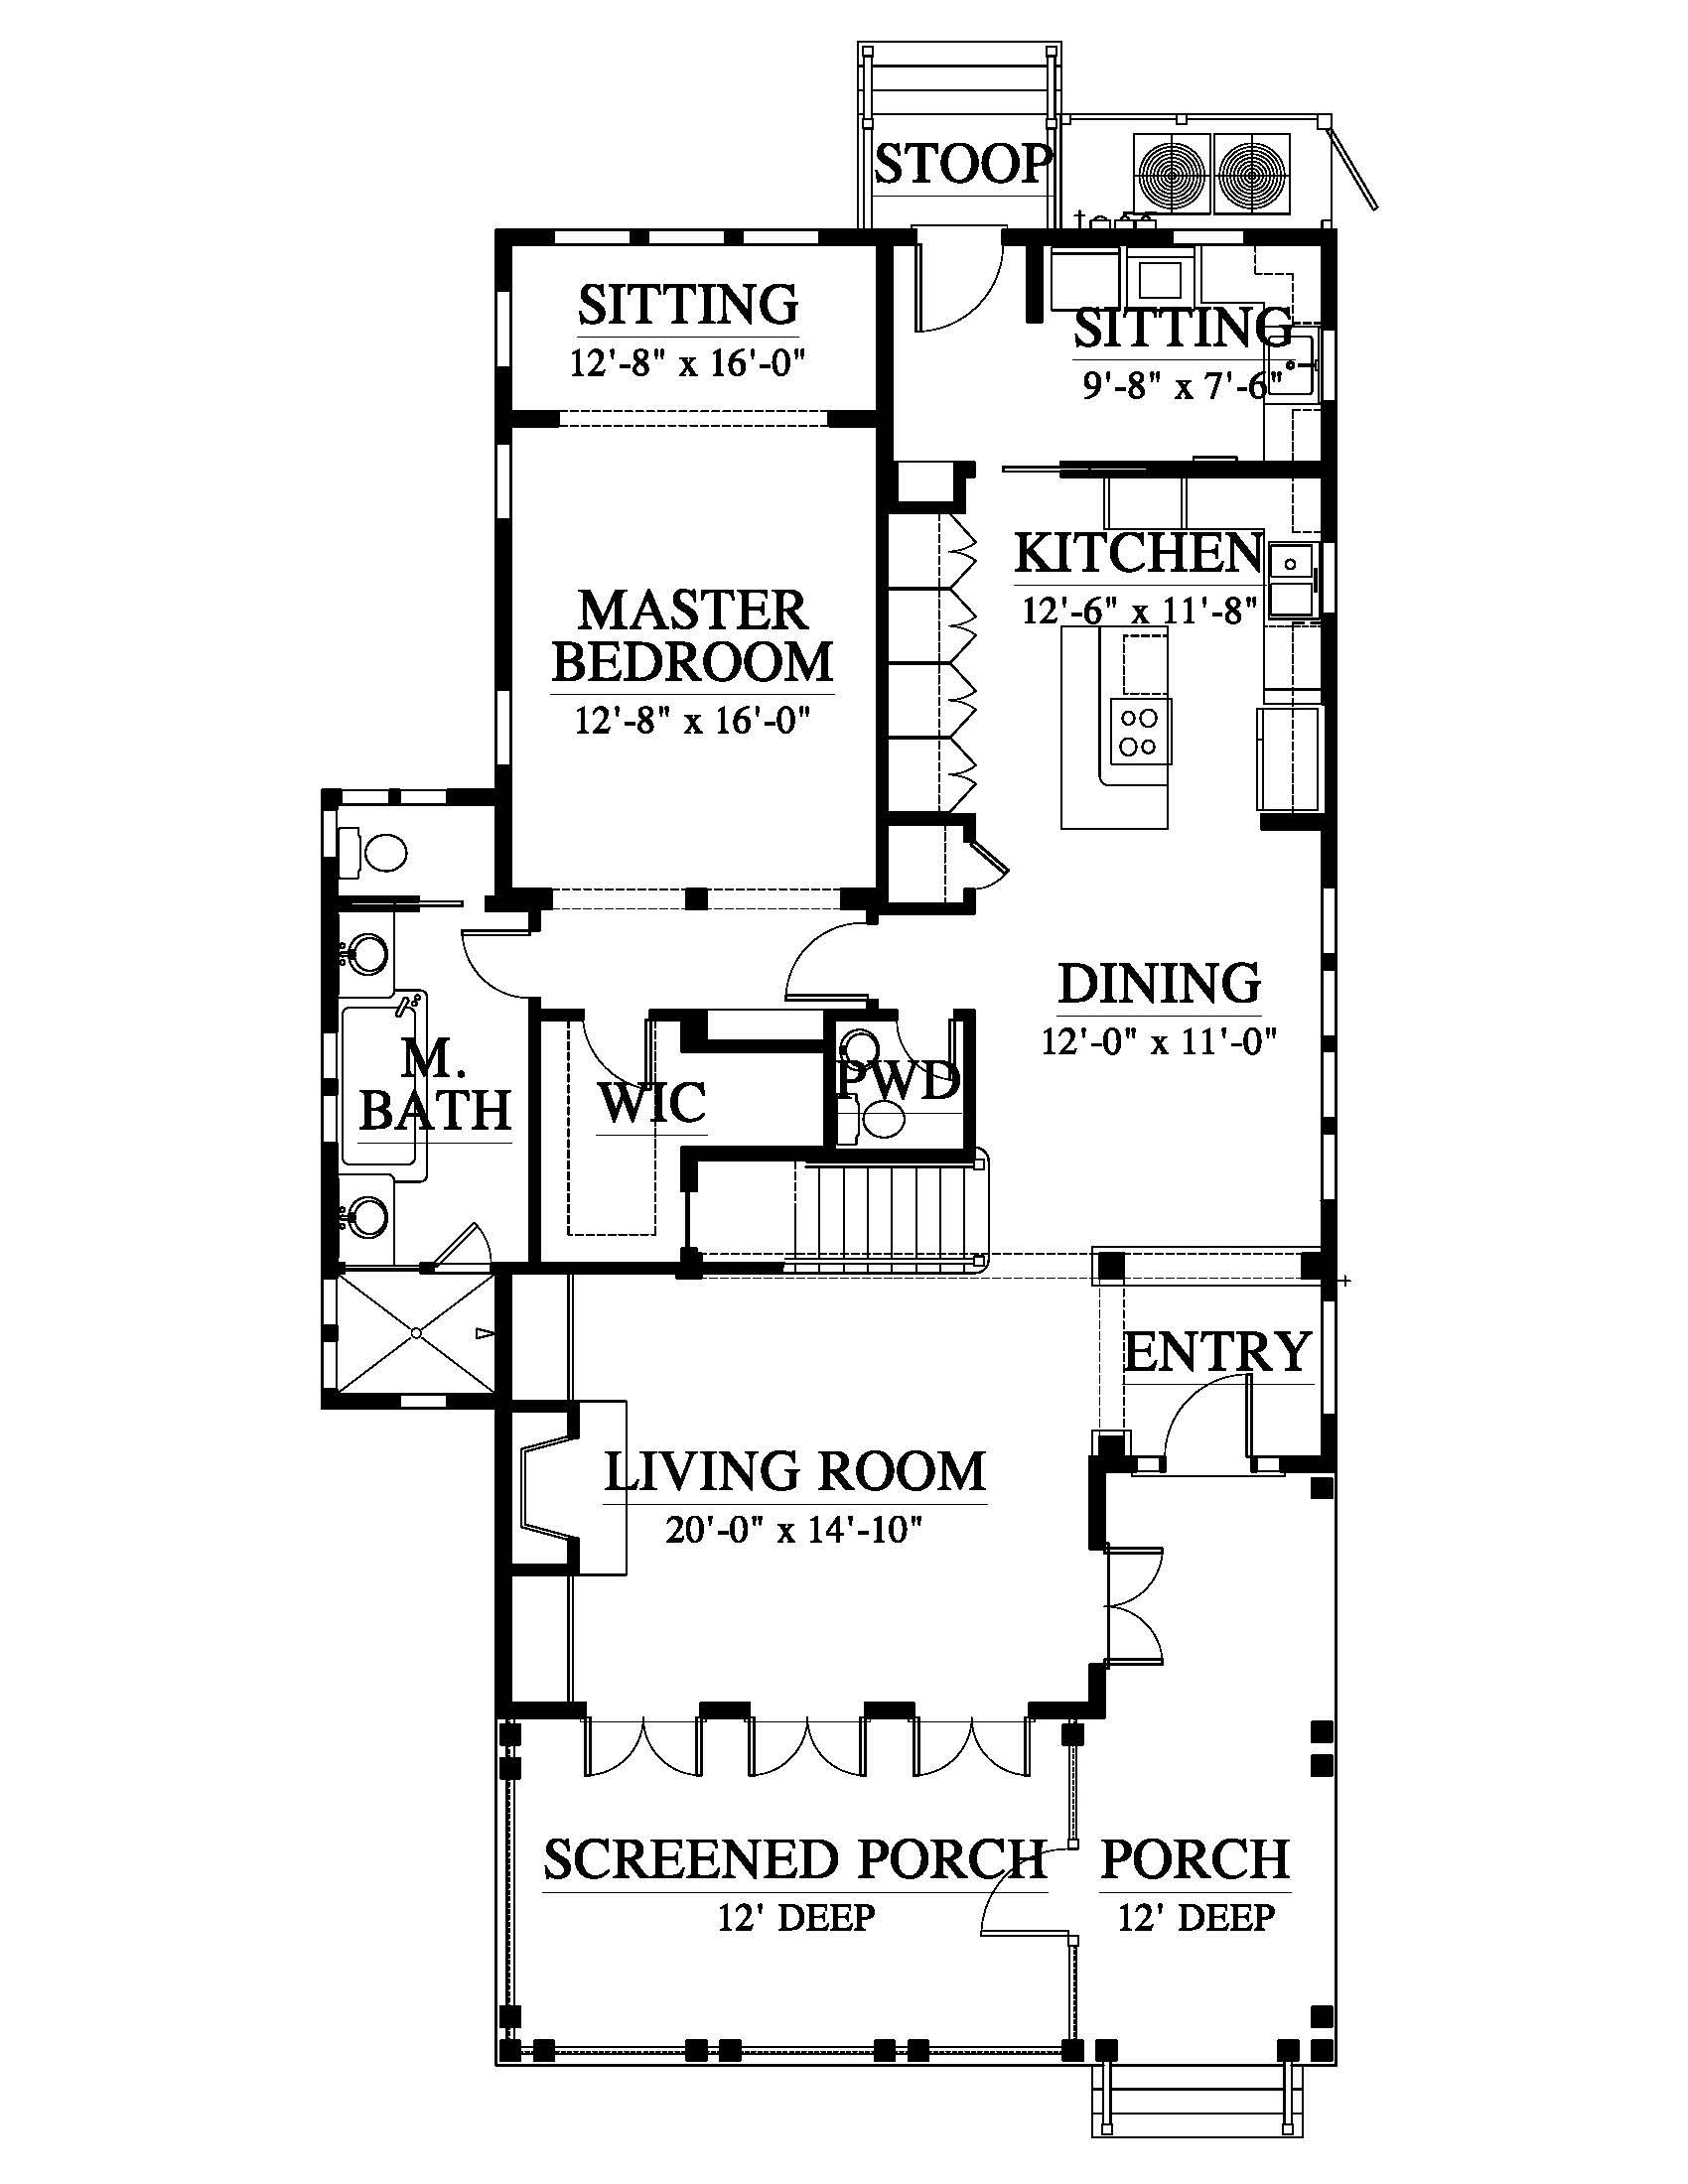 Master Suite Sitting Room House Plans How To Plan Floor Plans